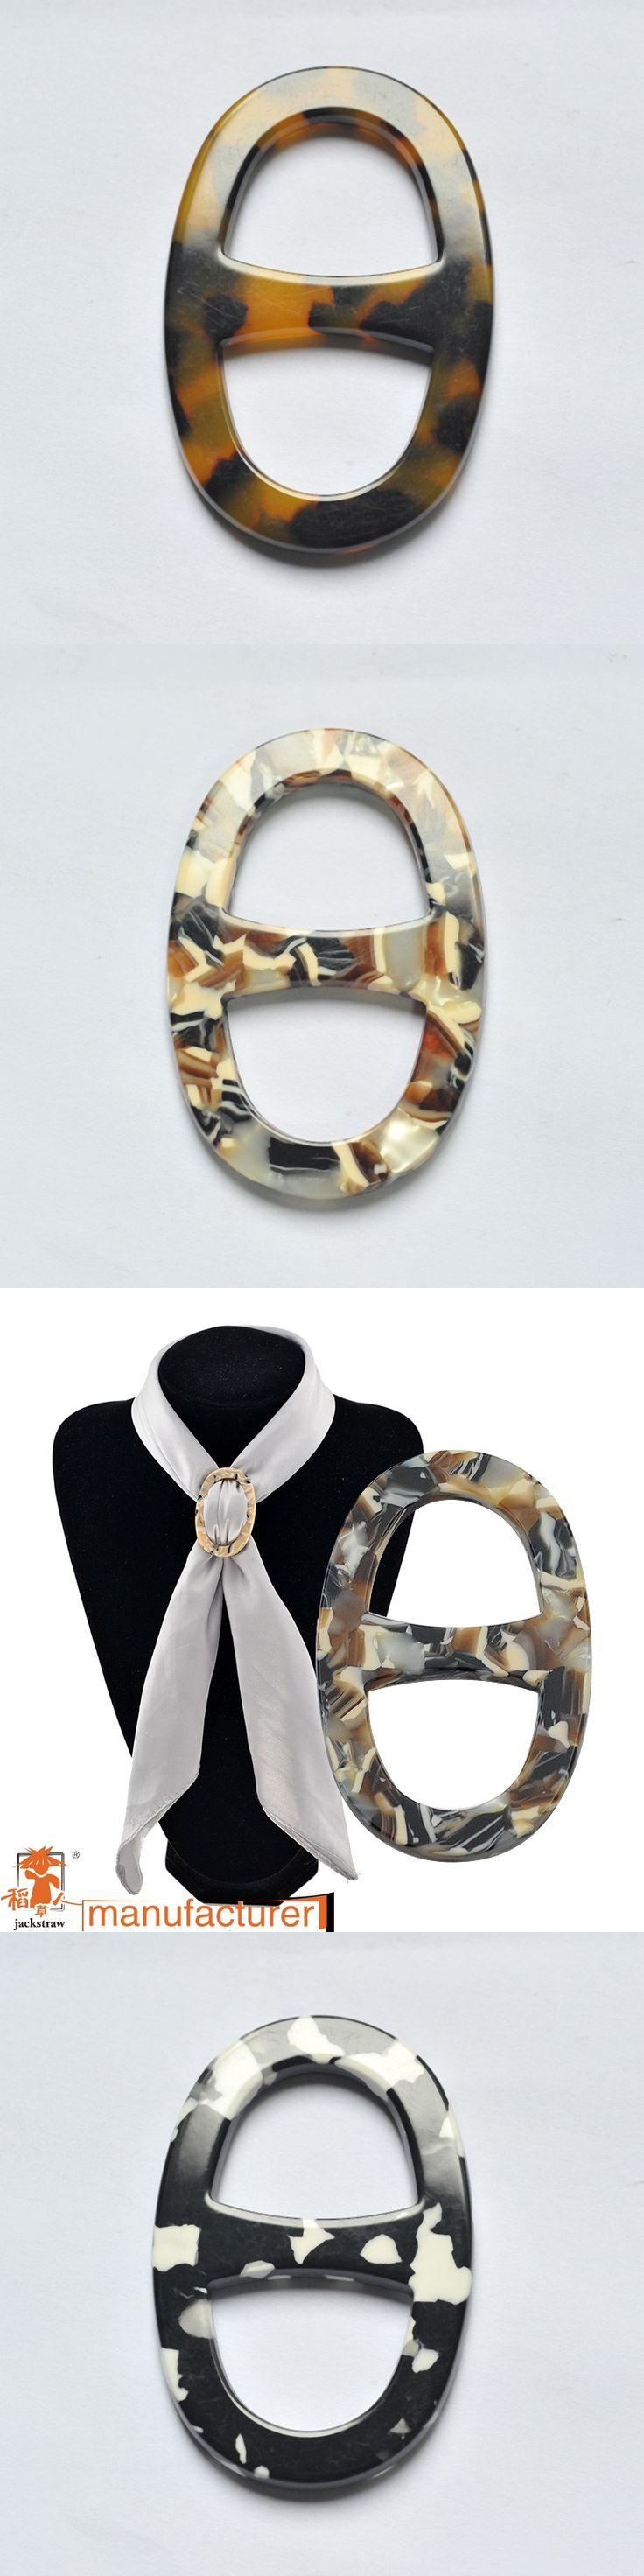 The new ellipse chain.scarves buckle Acetate sheet Han edition popular buckle wholesale scarves, word